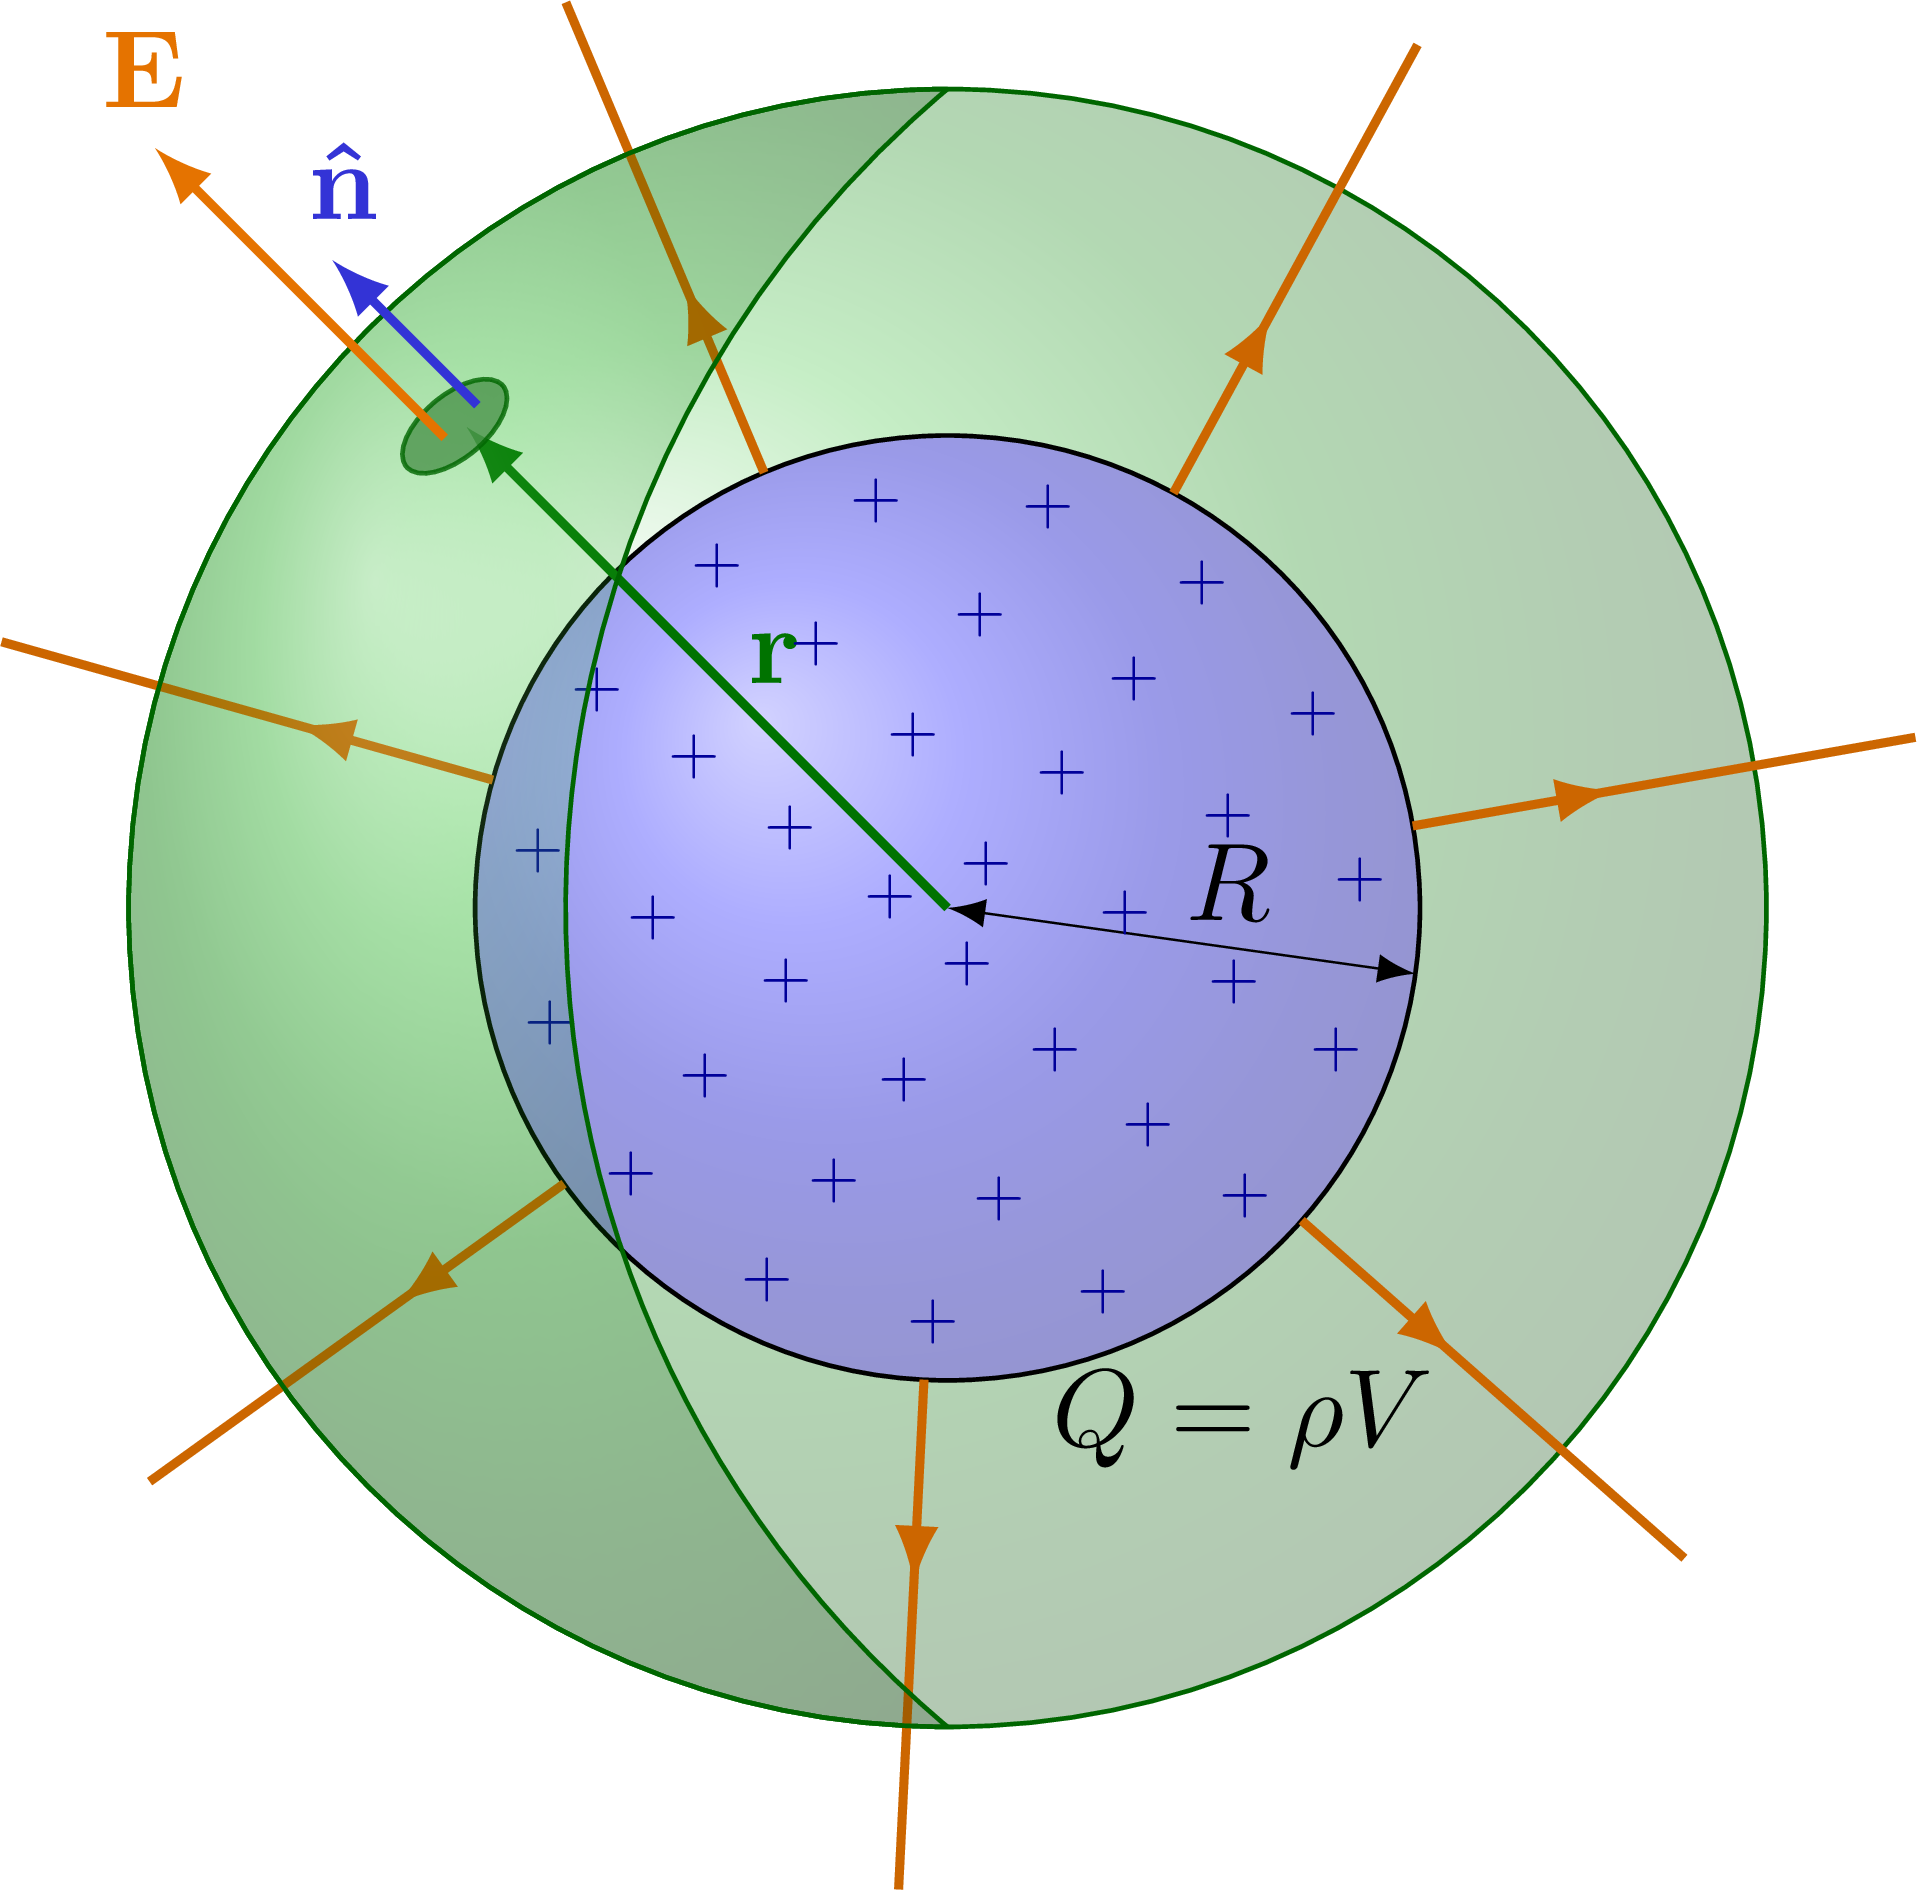 electric_field_sphere-003.png